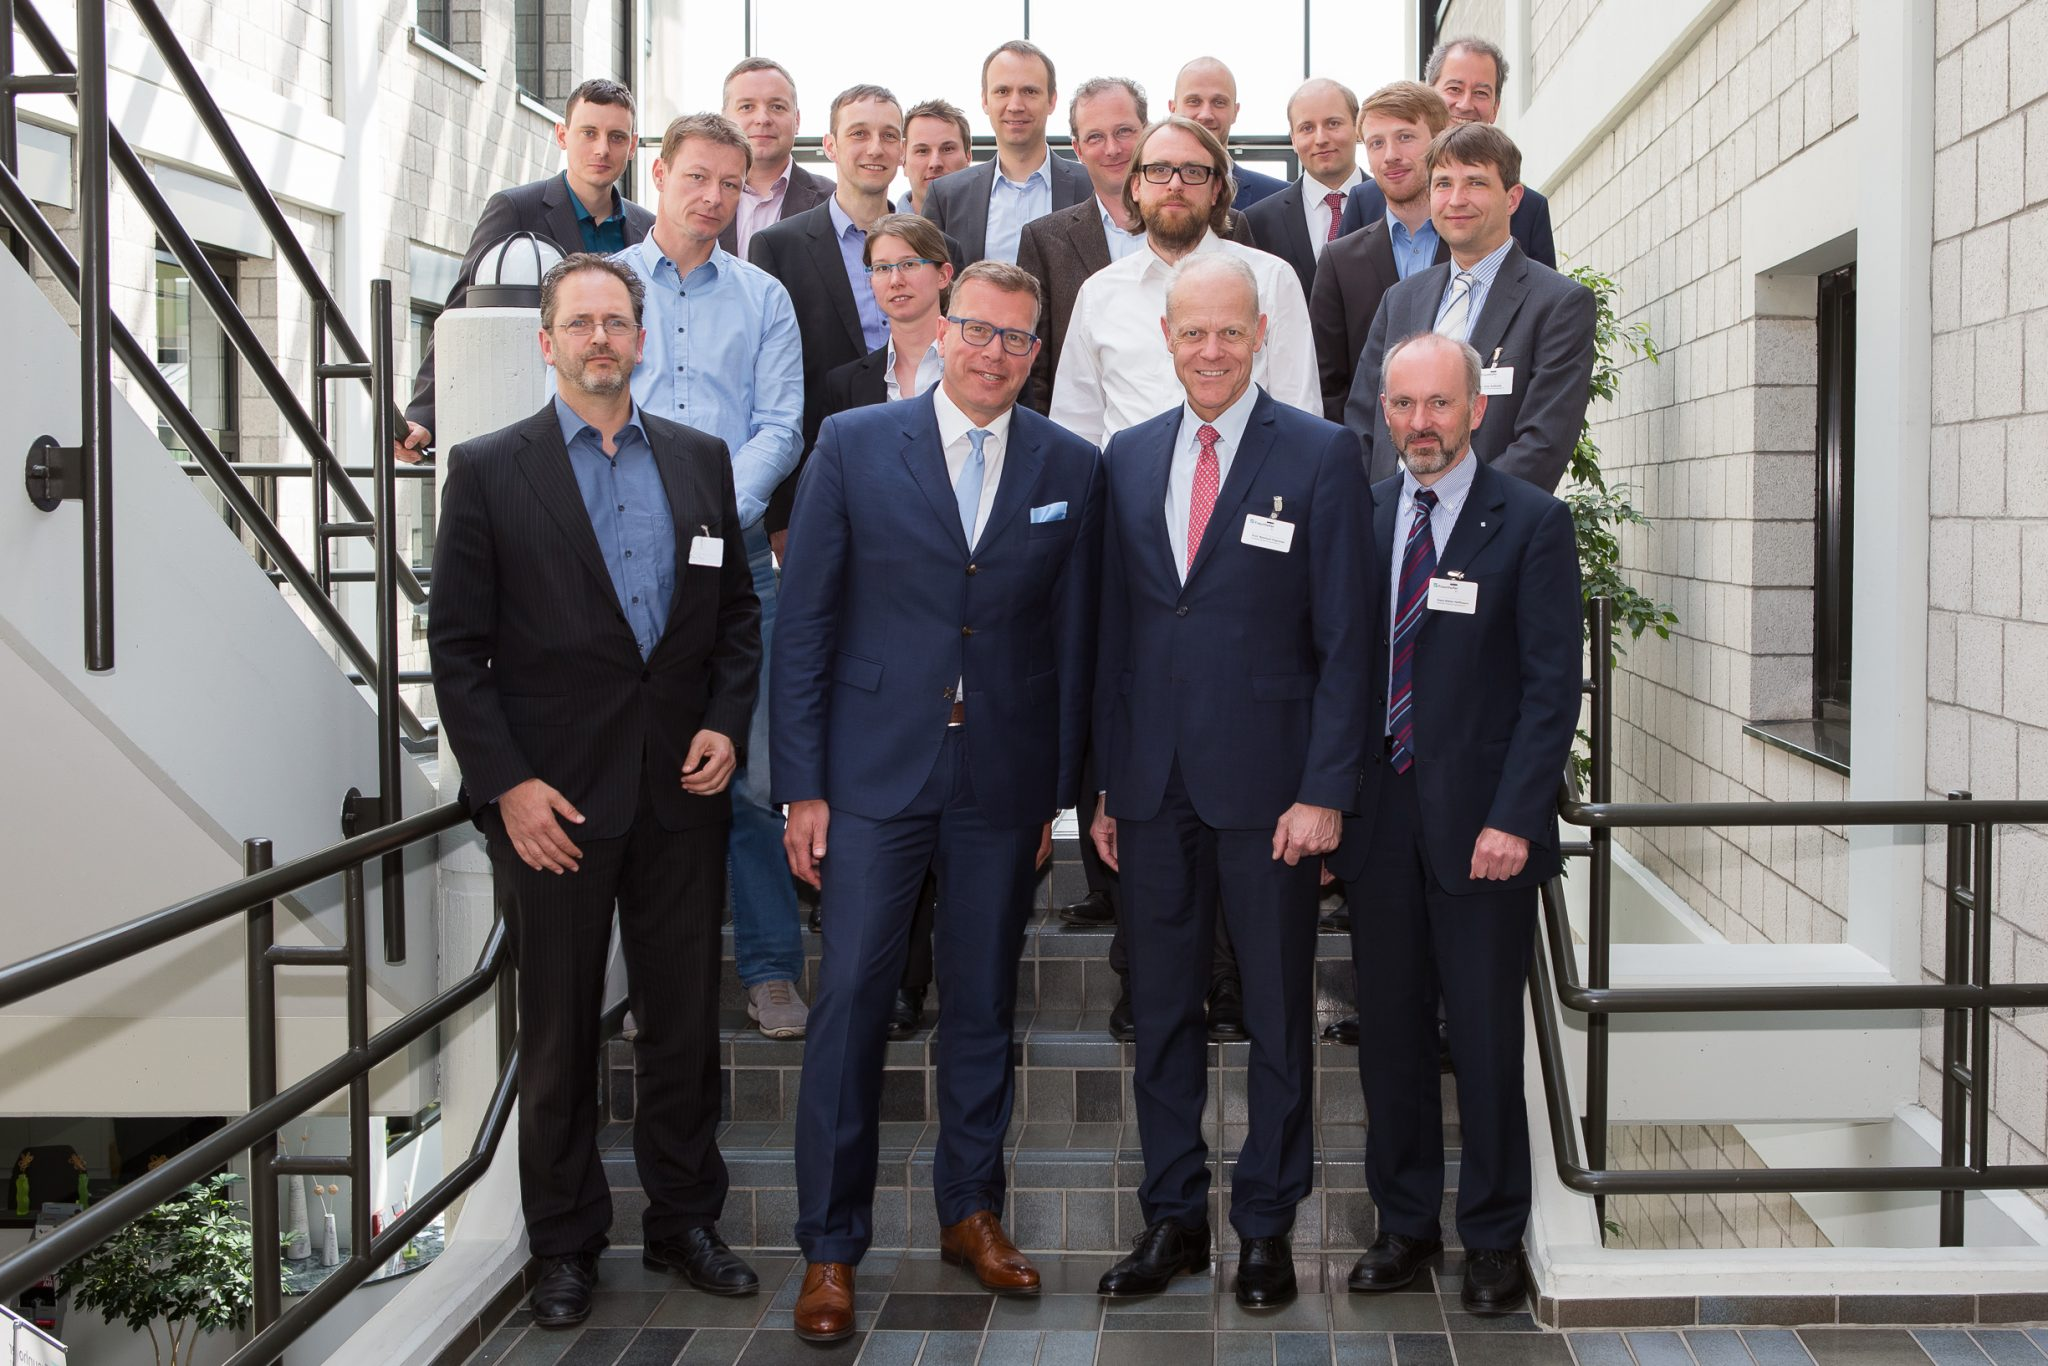 Partners of the Fraunhofer Cluster of Excellence met for the kick-off meeting on May 2, 2018 in Aachen. The coordinators: Cluster director Prof. Reinhart Poprawe, Fraunhofer ILT (front row, second from right), and Prof. Andreas Tünnermann, Fraunhofer IOF (front row, second from left). Photo via Fraunhofer ILT.